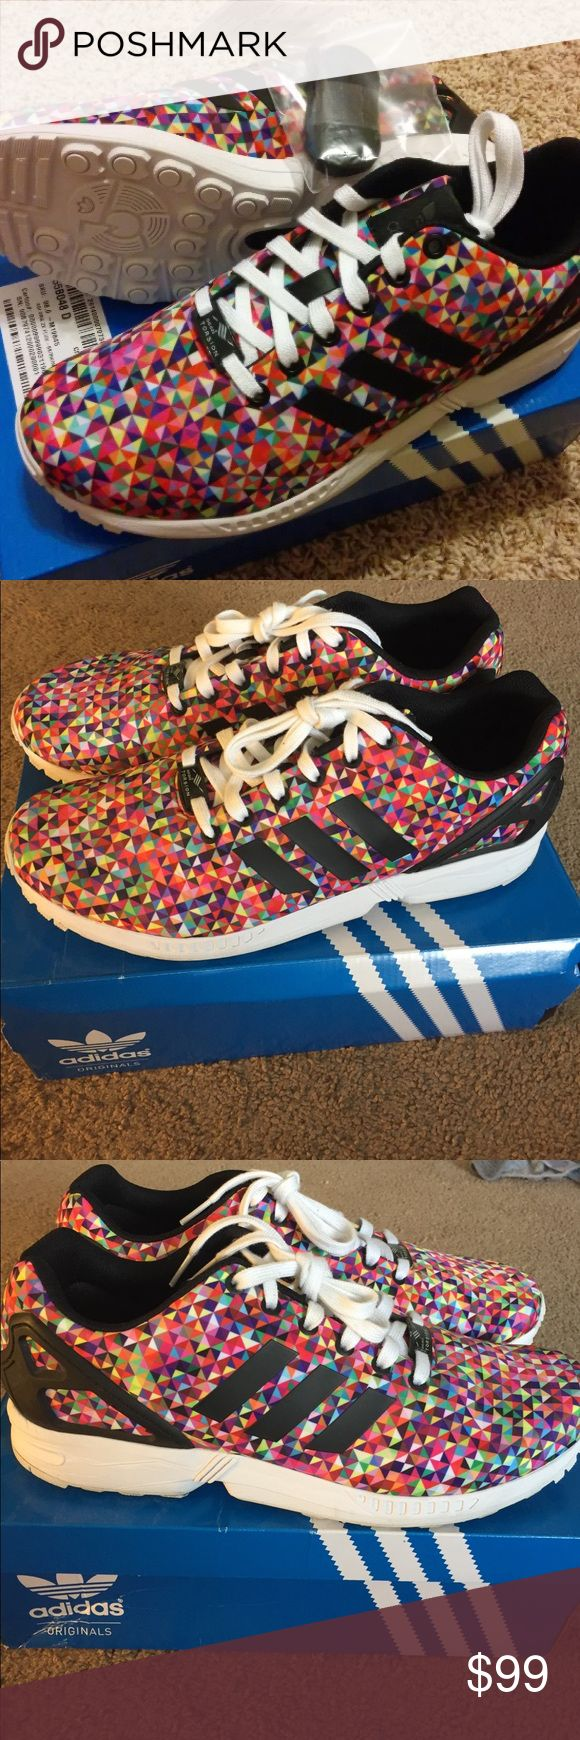 Adidas ZX Flux Multicolor Prism Size 11 Adidas ZX Flux Multicolor Prism Size 11 Men's Great Condition - Only worn a couple of time adidas Shoes Athletic Shoes